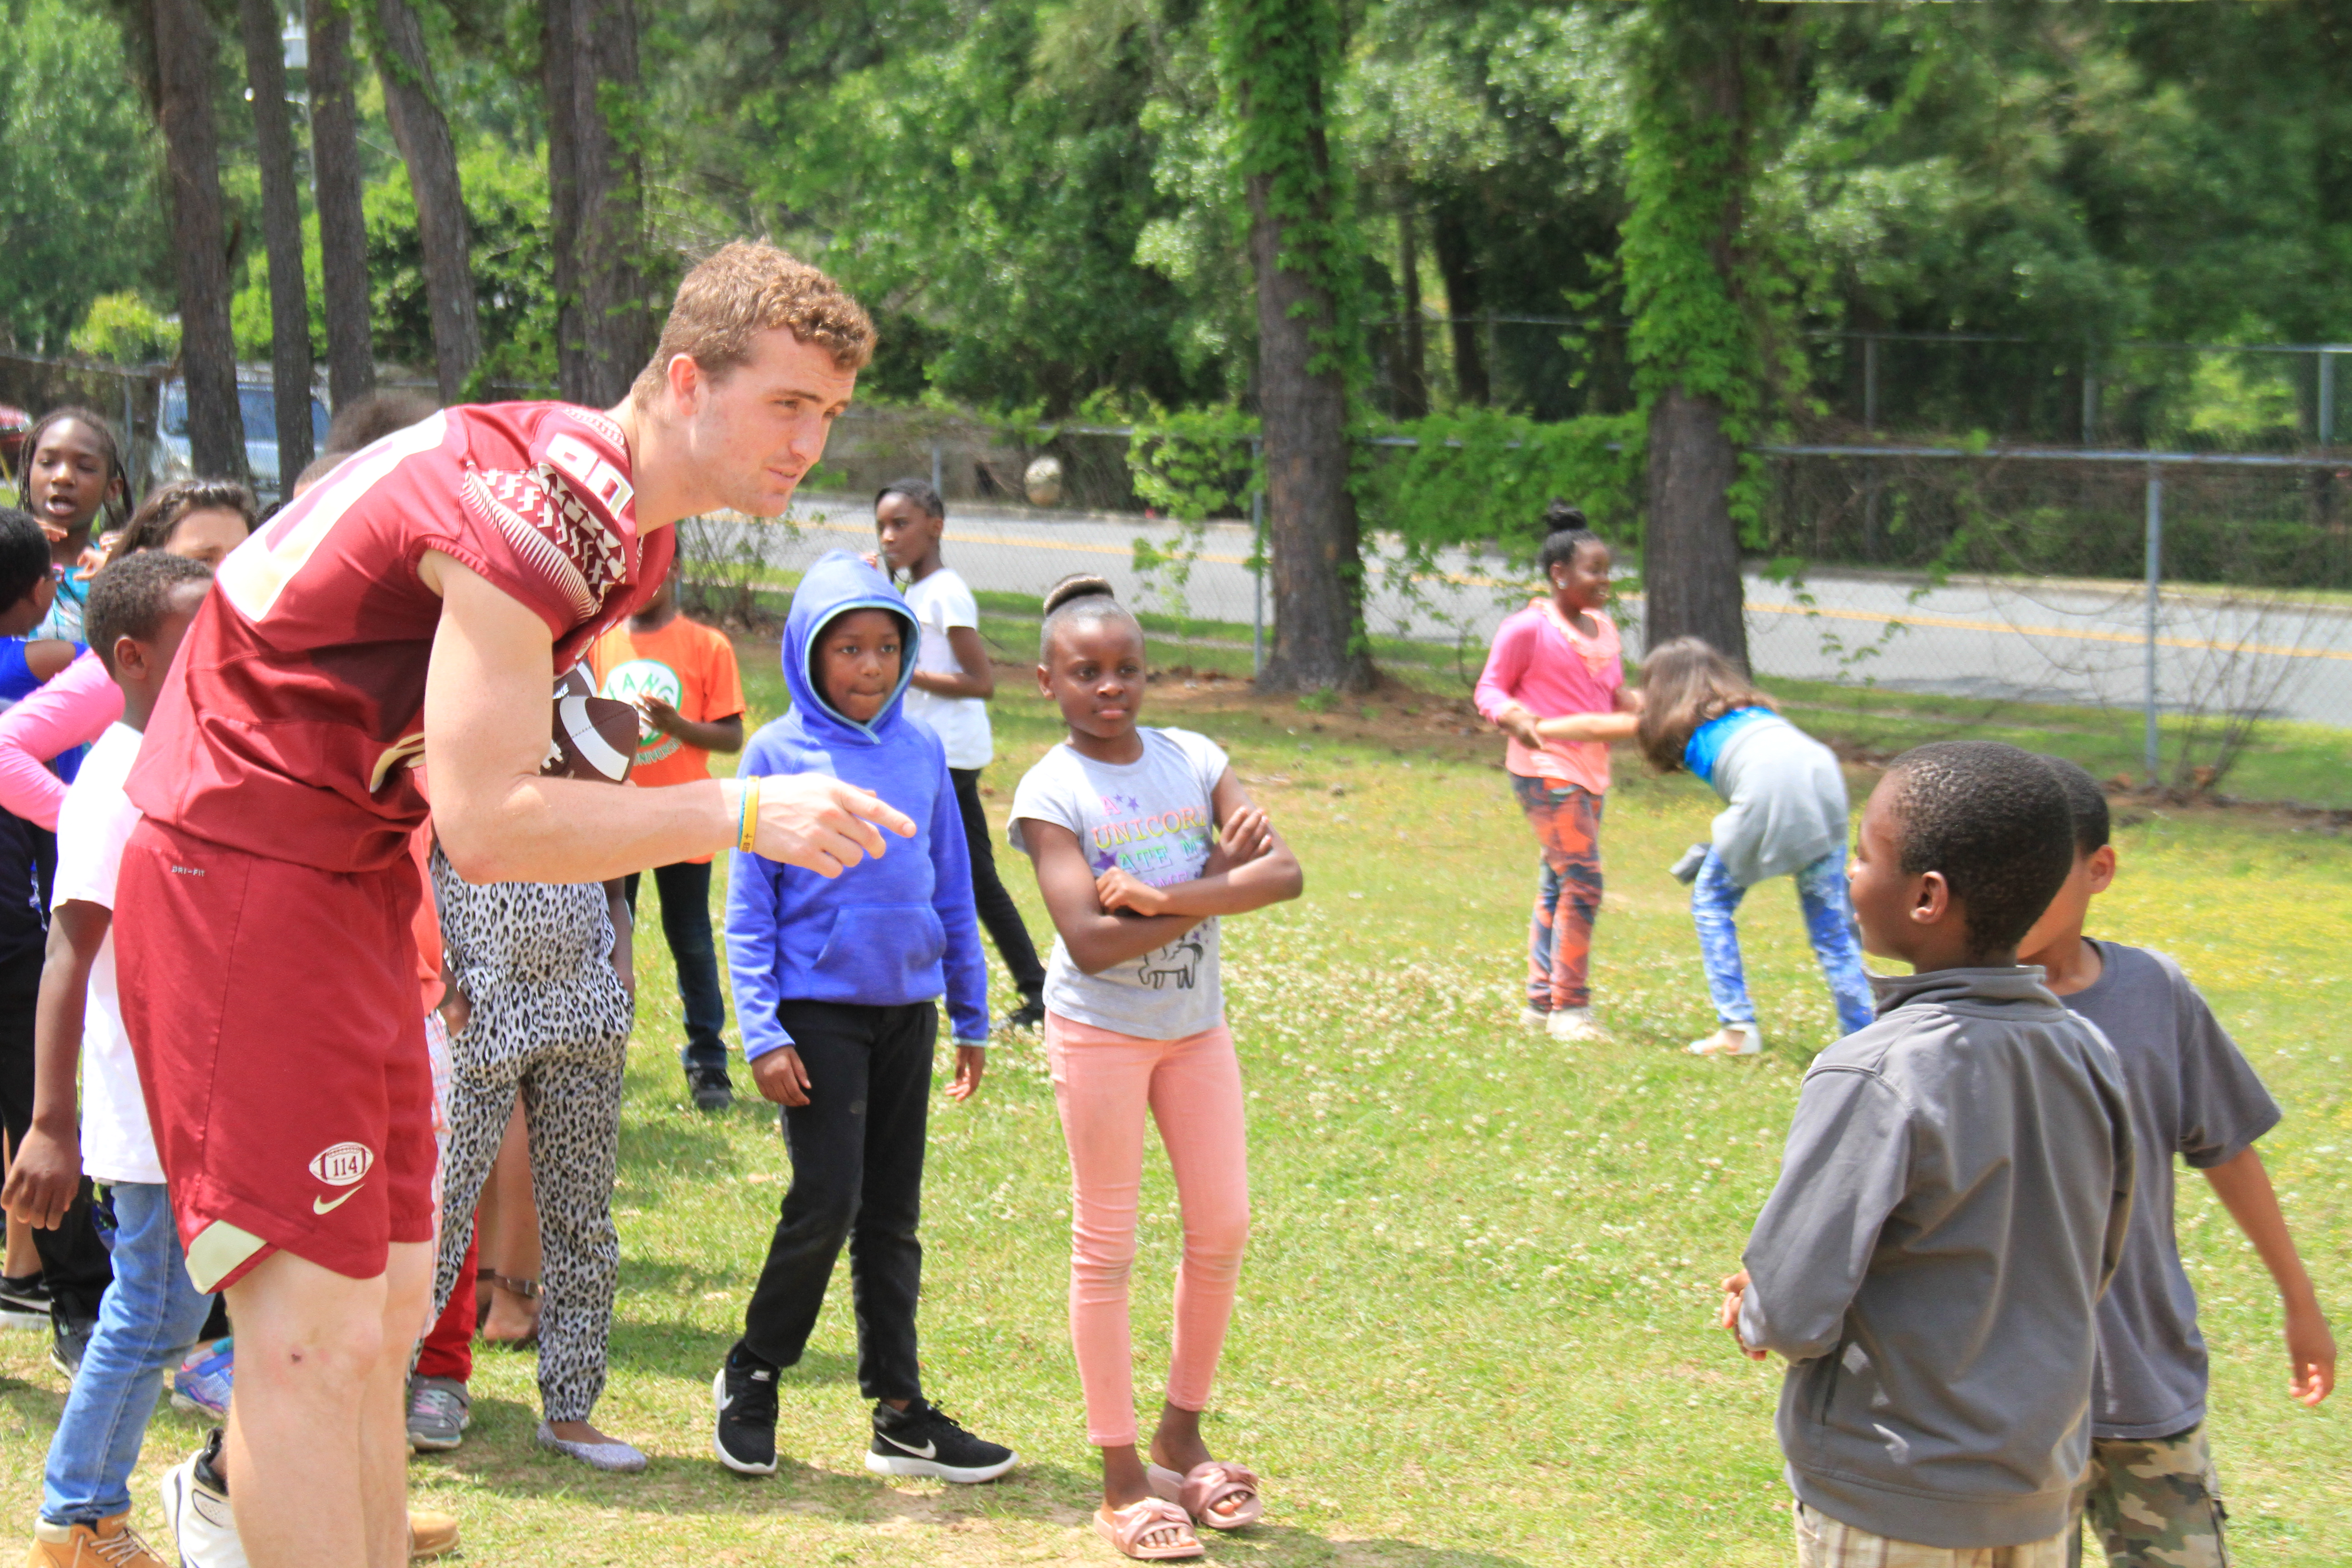 📸: Garnet vs. Gold: Community Service